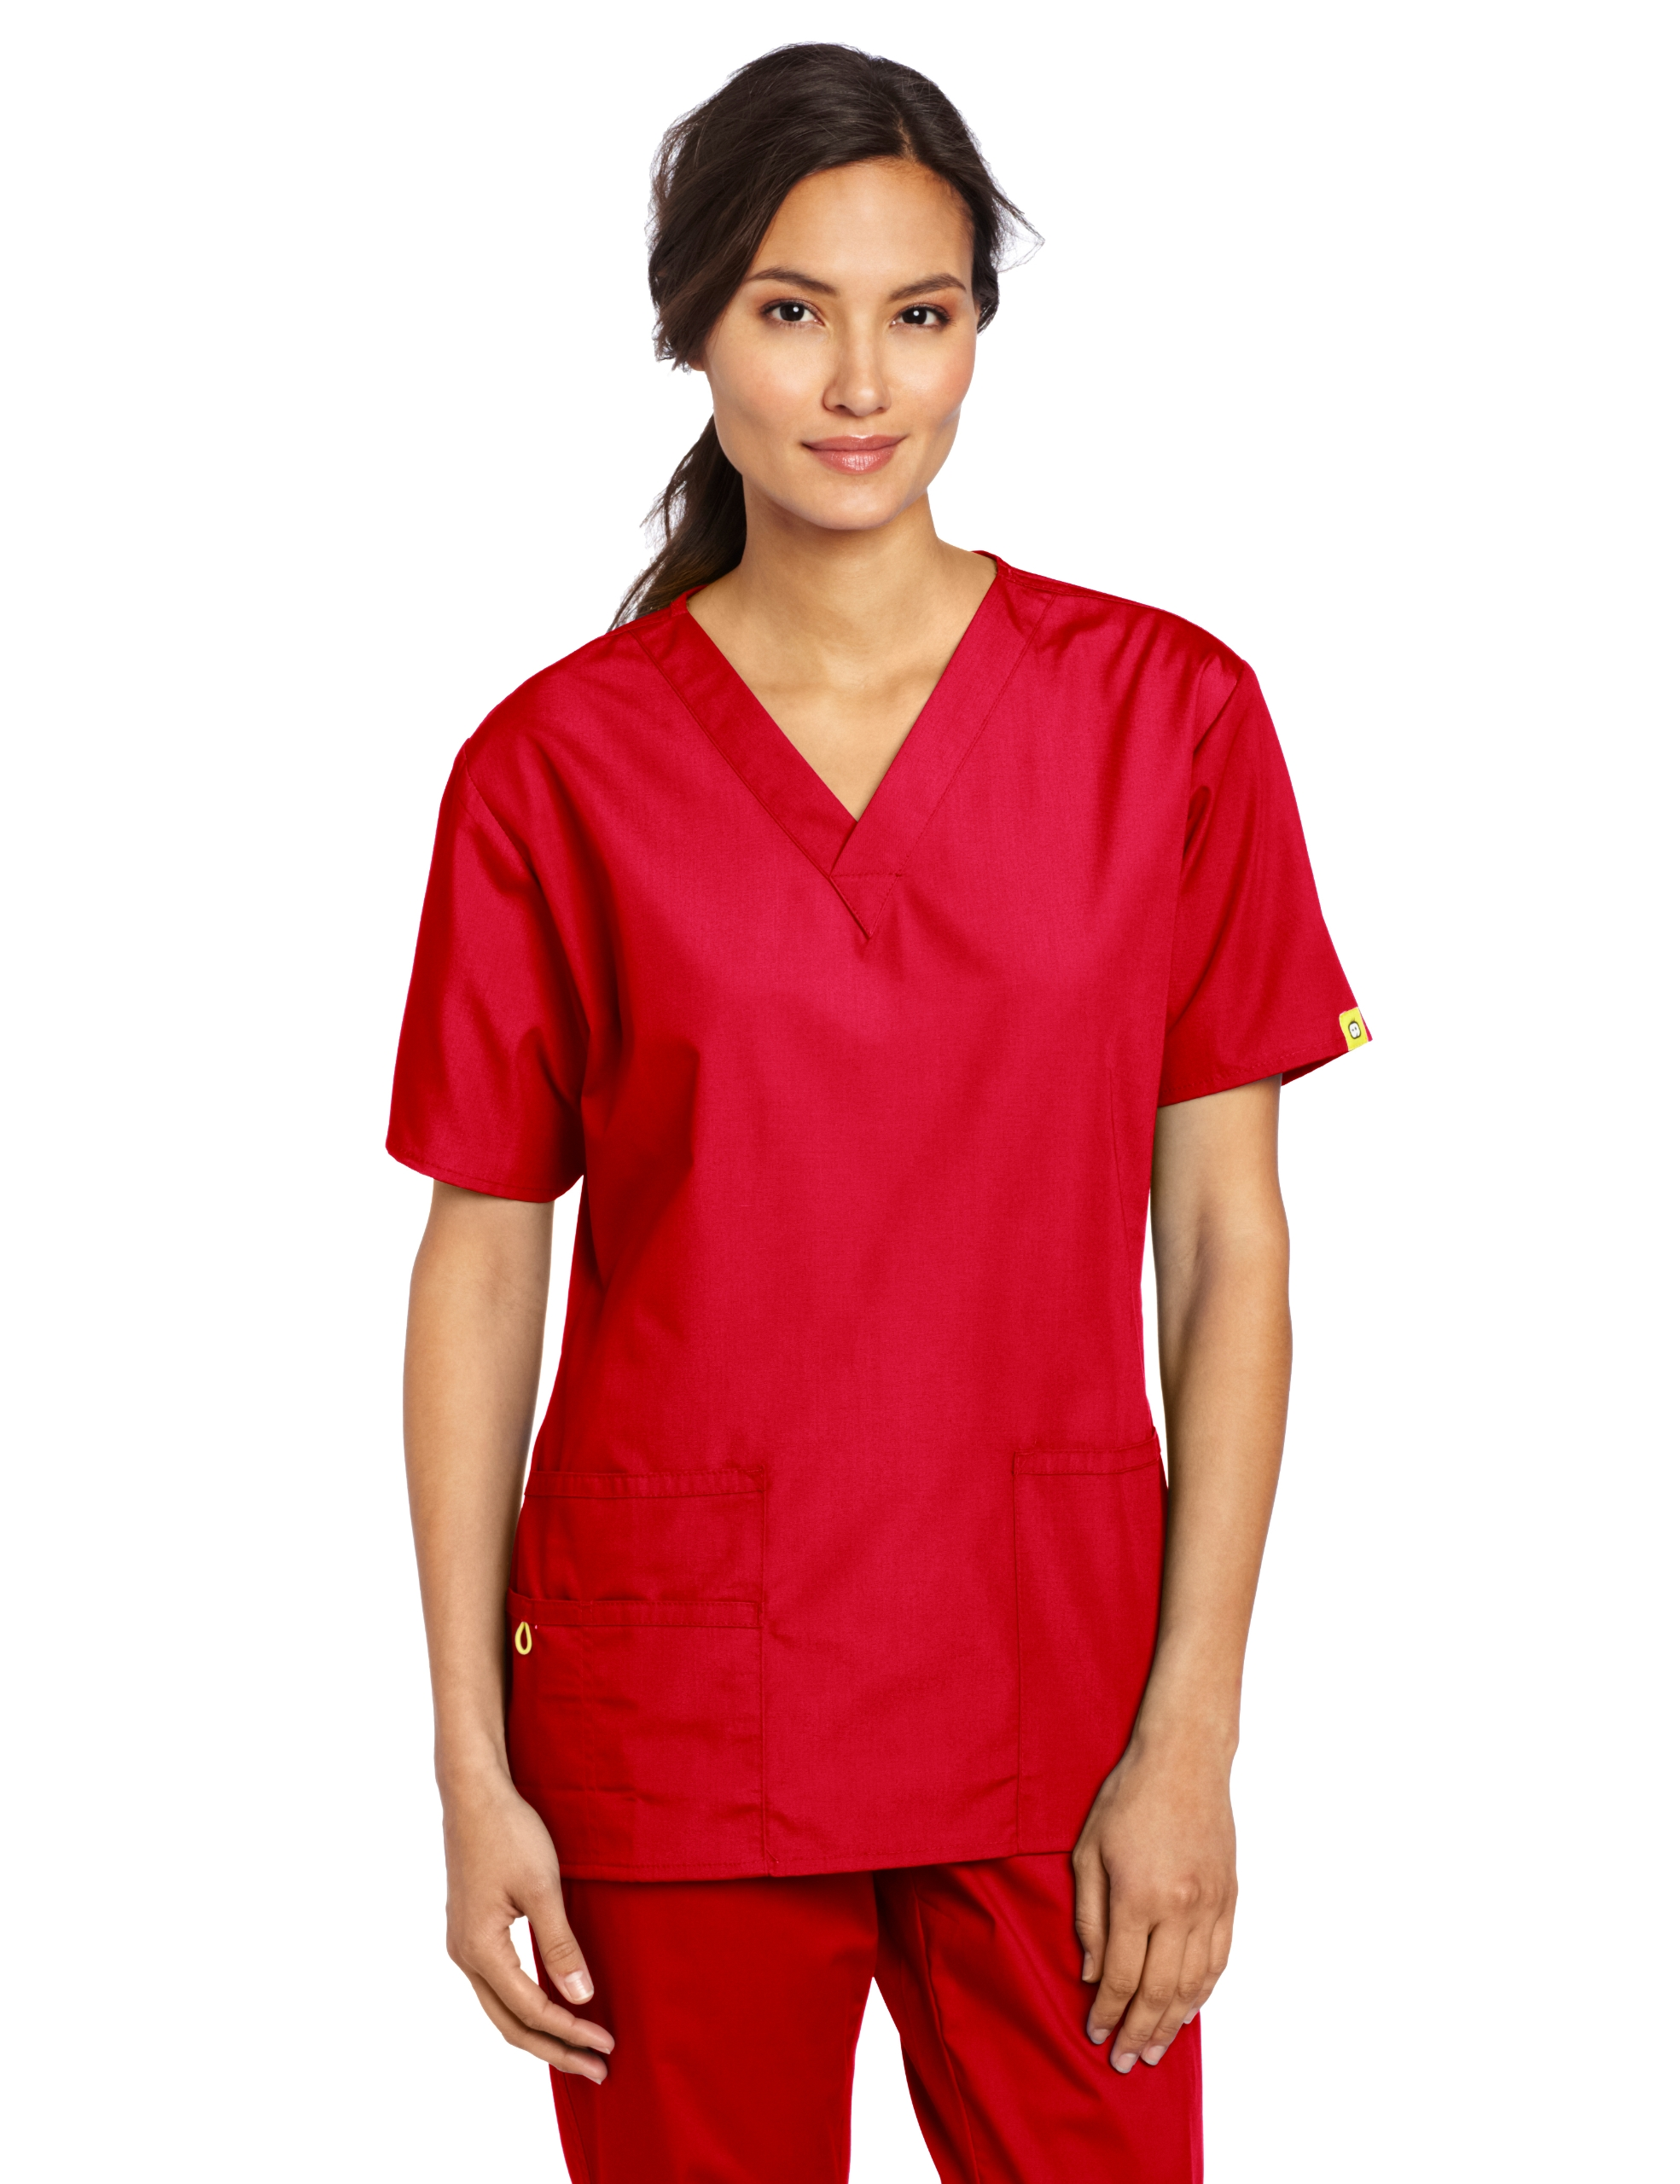 WonderWink Women's Scrubs Bravo 5 Pocket V-Neck Top, Red, 3X-Large by WonderWink